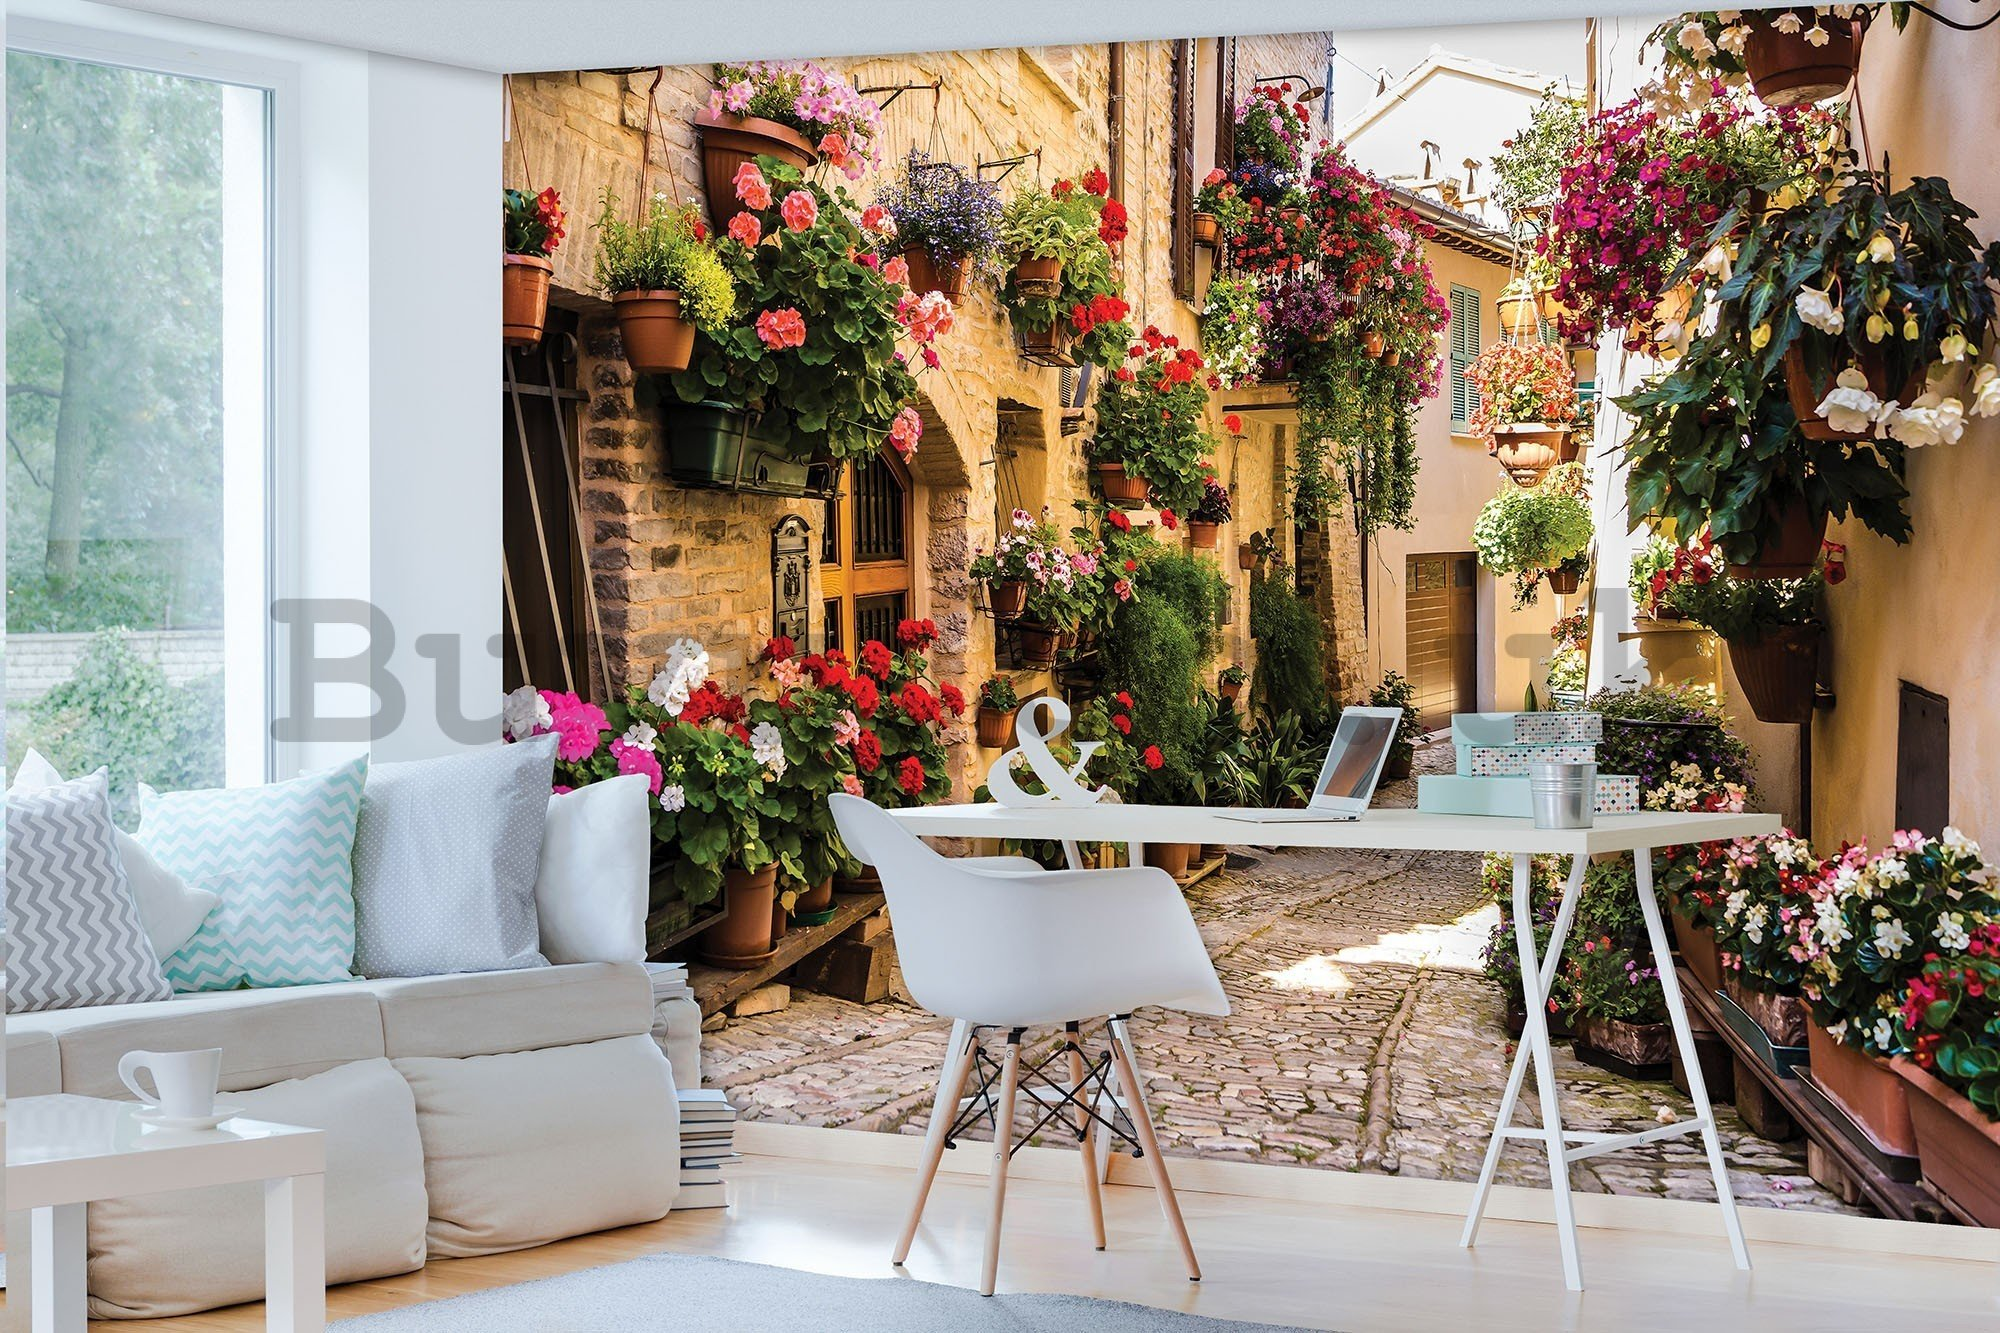 Wall mural vlies: Street with flowers - 416x254 cm